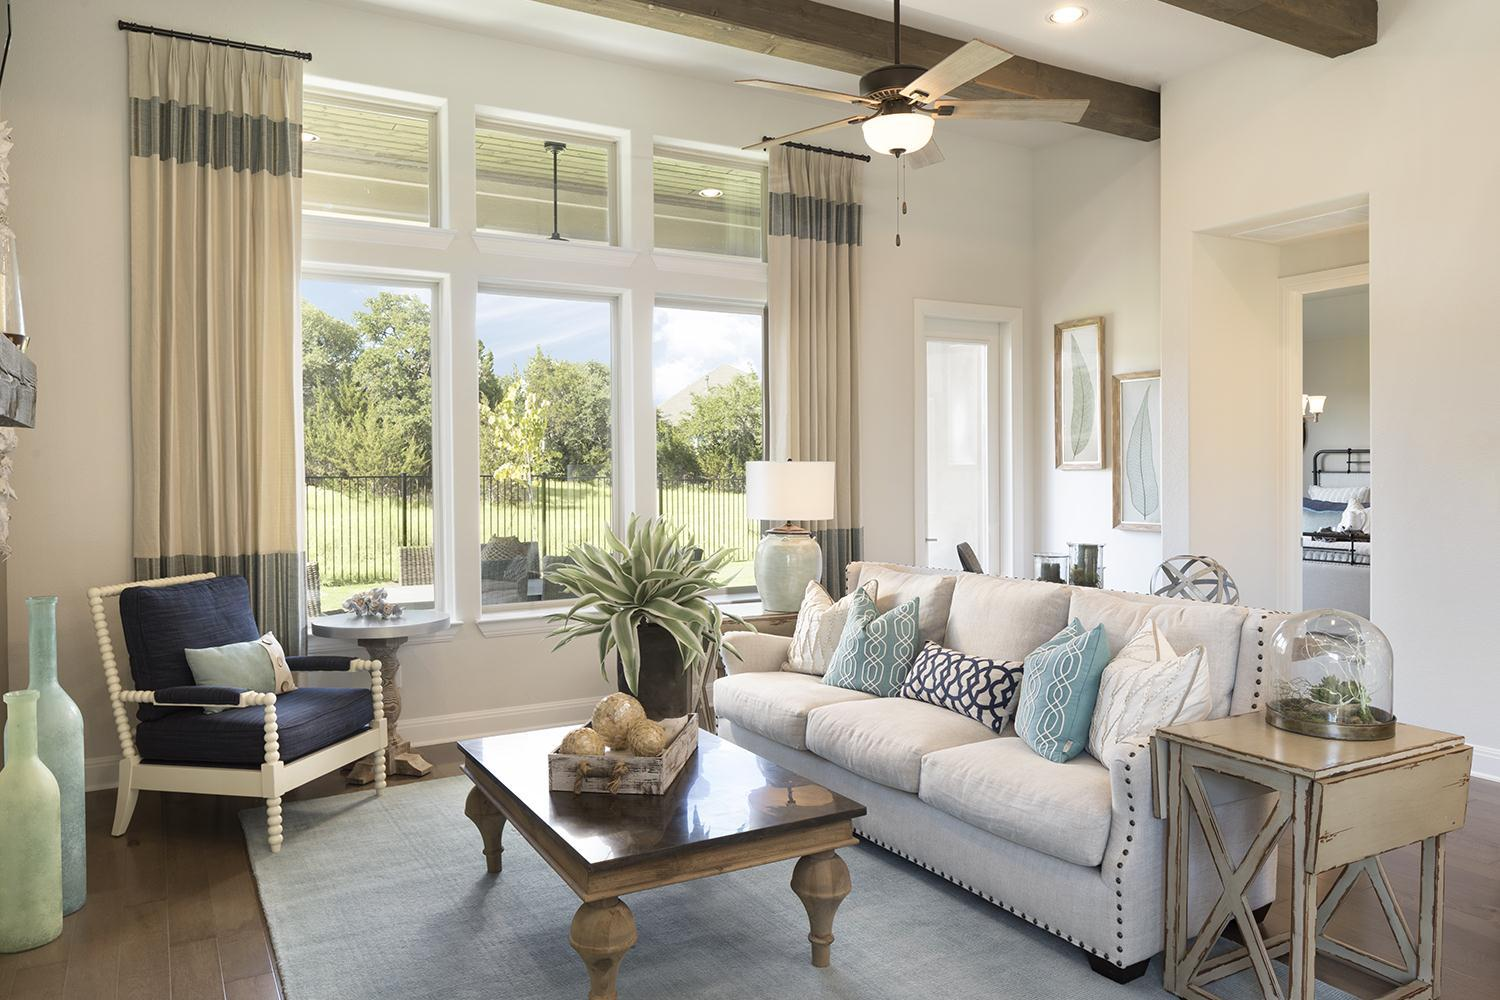 Living Area featured in the Avondale w/ Casita By Sitterle Homes in Austin, TX